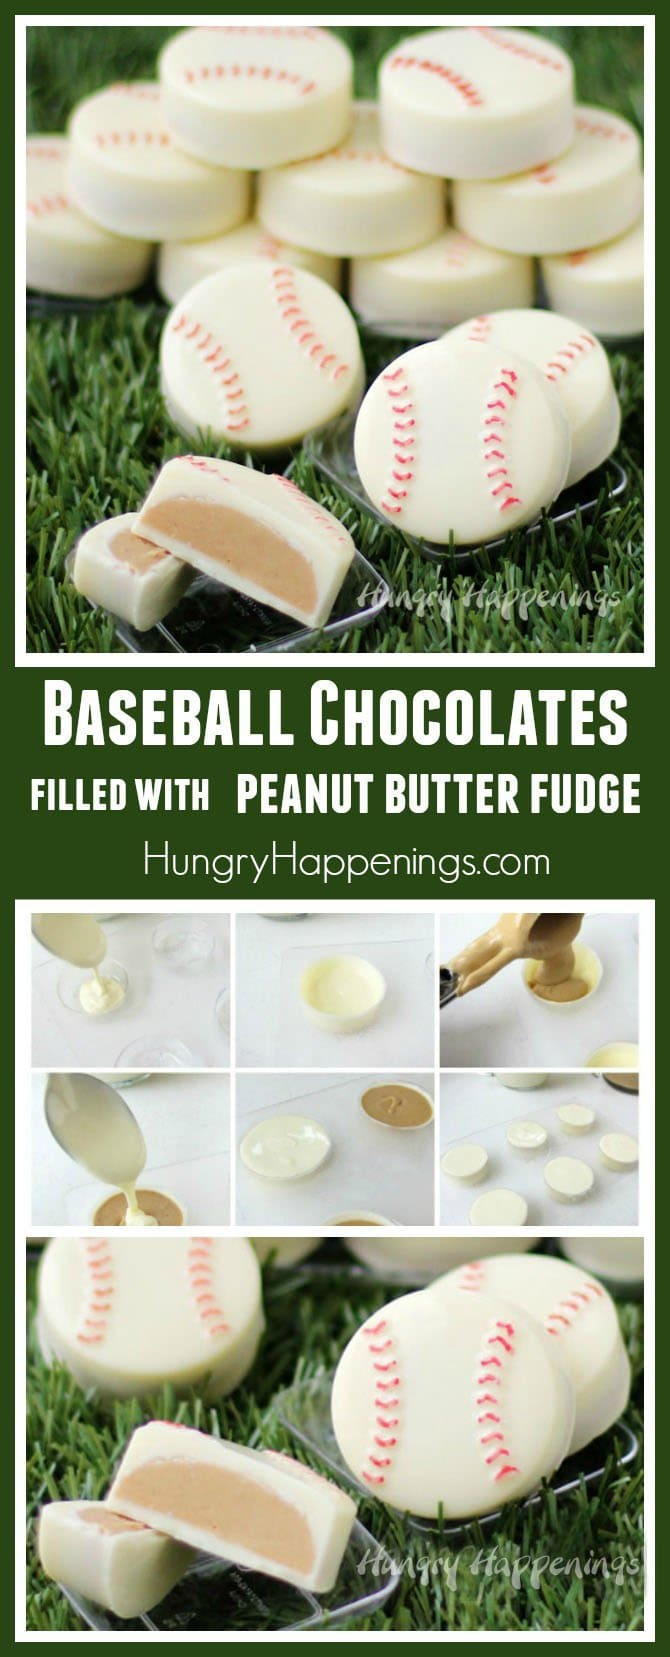 Hit a home run by serving these Baseball Chocolates filled with Peanut Butter Fudge to your favorite ball players.